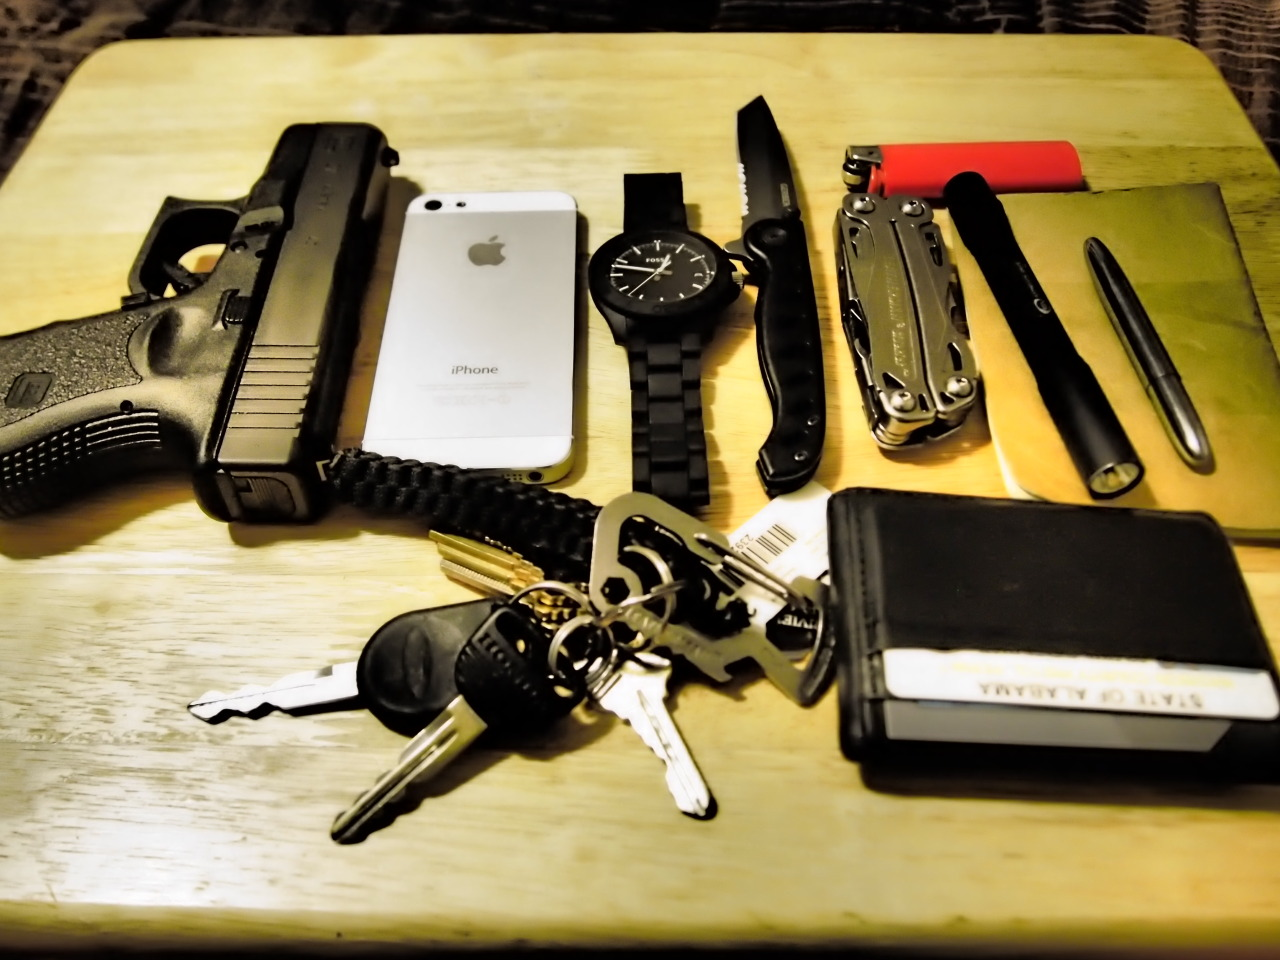 My everyday carry for work and personal Submitted By: bexsquizet  Glock 27 - If I am at work its in my 5.11 bag if I am not its on me at all times iPhone 5 - Use it more as a mp3 player, gps, and facebook device more than a phone Fossil Watch - Shop Amazon - I only wear it on my off days or if I am not cooking at my job and more managing, stays in my left pocket  Gerber Evo - Purchase on Amazon - Nice little knife use it for opening boxes at work does the job, it is clipped on my right pocket  Leatherman Sidekick - Purchase on Amazon - favorite multi-tool has what I need on it and has a pocket clip can't beat it. I keep this clipped in my right pocket StreamLight Stylus Pro - Purchase on Amazon - Everyone has it great flash light fits in my pocket next to my knife I like a low profile clipped in my right pocket  Fisher Space Pen - Purchase on Amazon - I thought I would have lost it weeks ago but still haven't I love it. If and when I loose it I will buy another one asap. This stays in my left pocket with my iphone. Moleskin Pocket Notebook - Purchase on Amazon - I keep this in my back pocket with my wallet comes in handy I take more notes now and keeps me organized at work when I was just using my iphone for notes. Keys - on the clip I keep my work keys separated from my car and house key nothing fancy also stays in my left pocket  Generic Money Clip / Card Holder - from wall mart stays in my back pocket with the notebook  Bic Lighter - its always in a different pocket